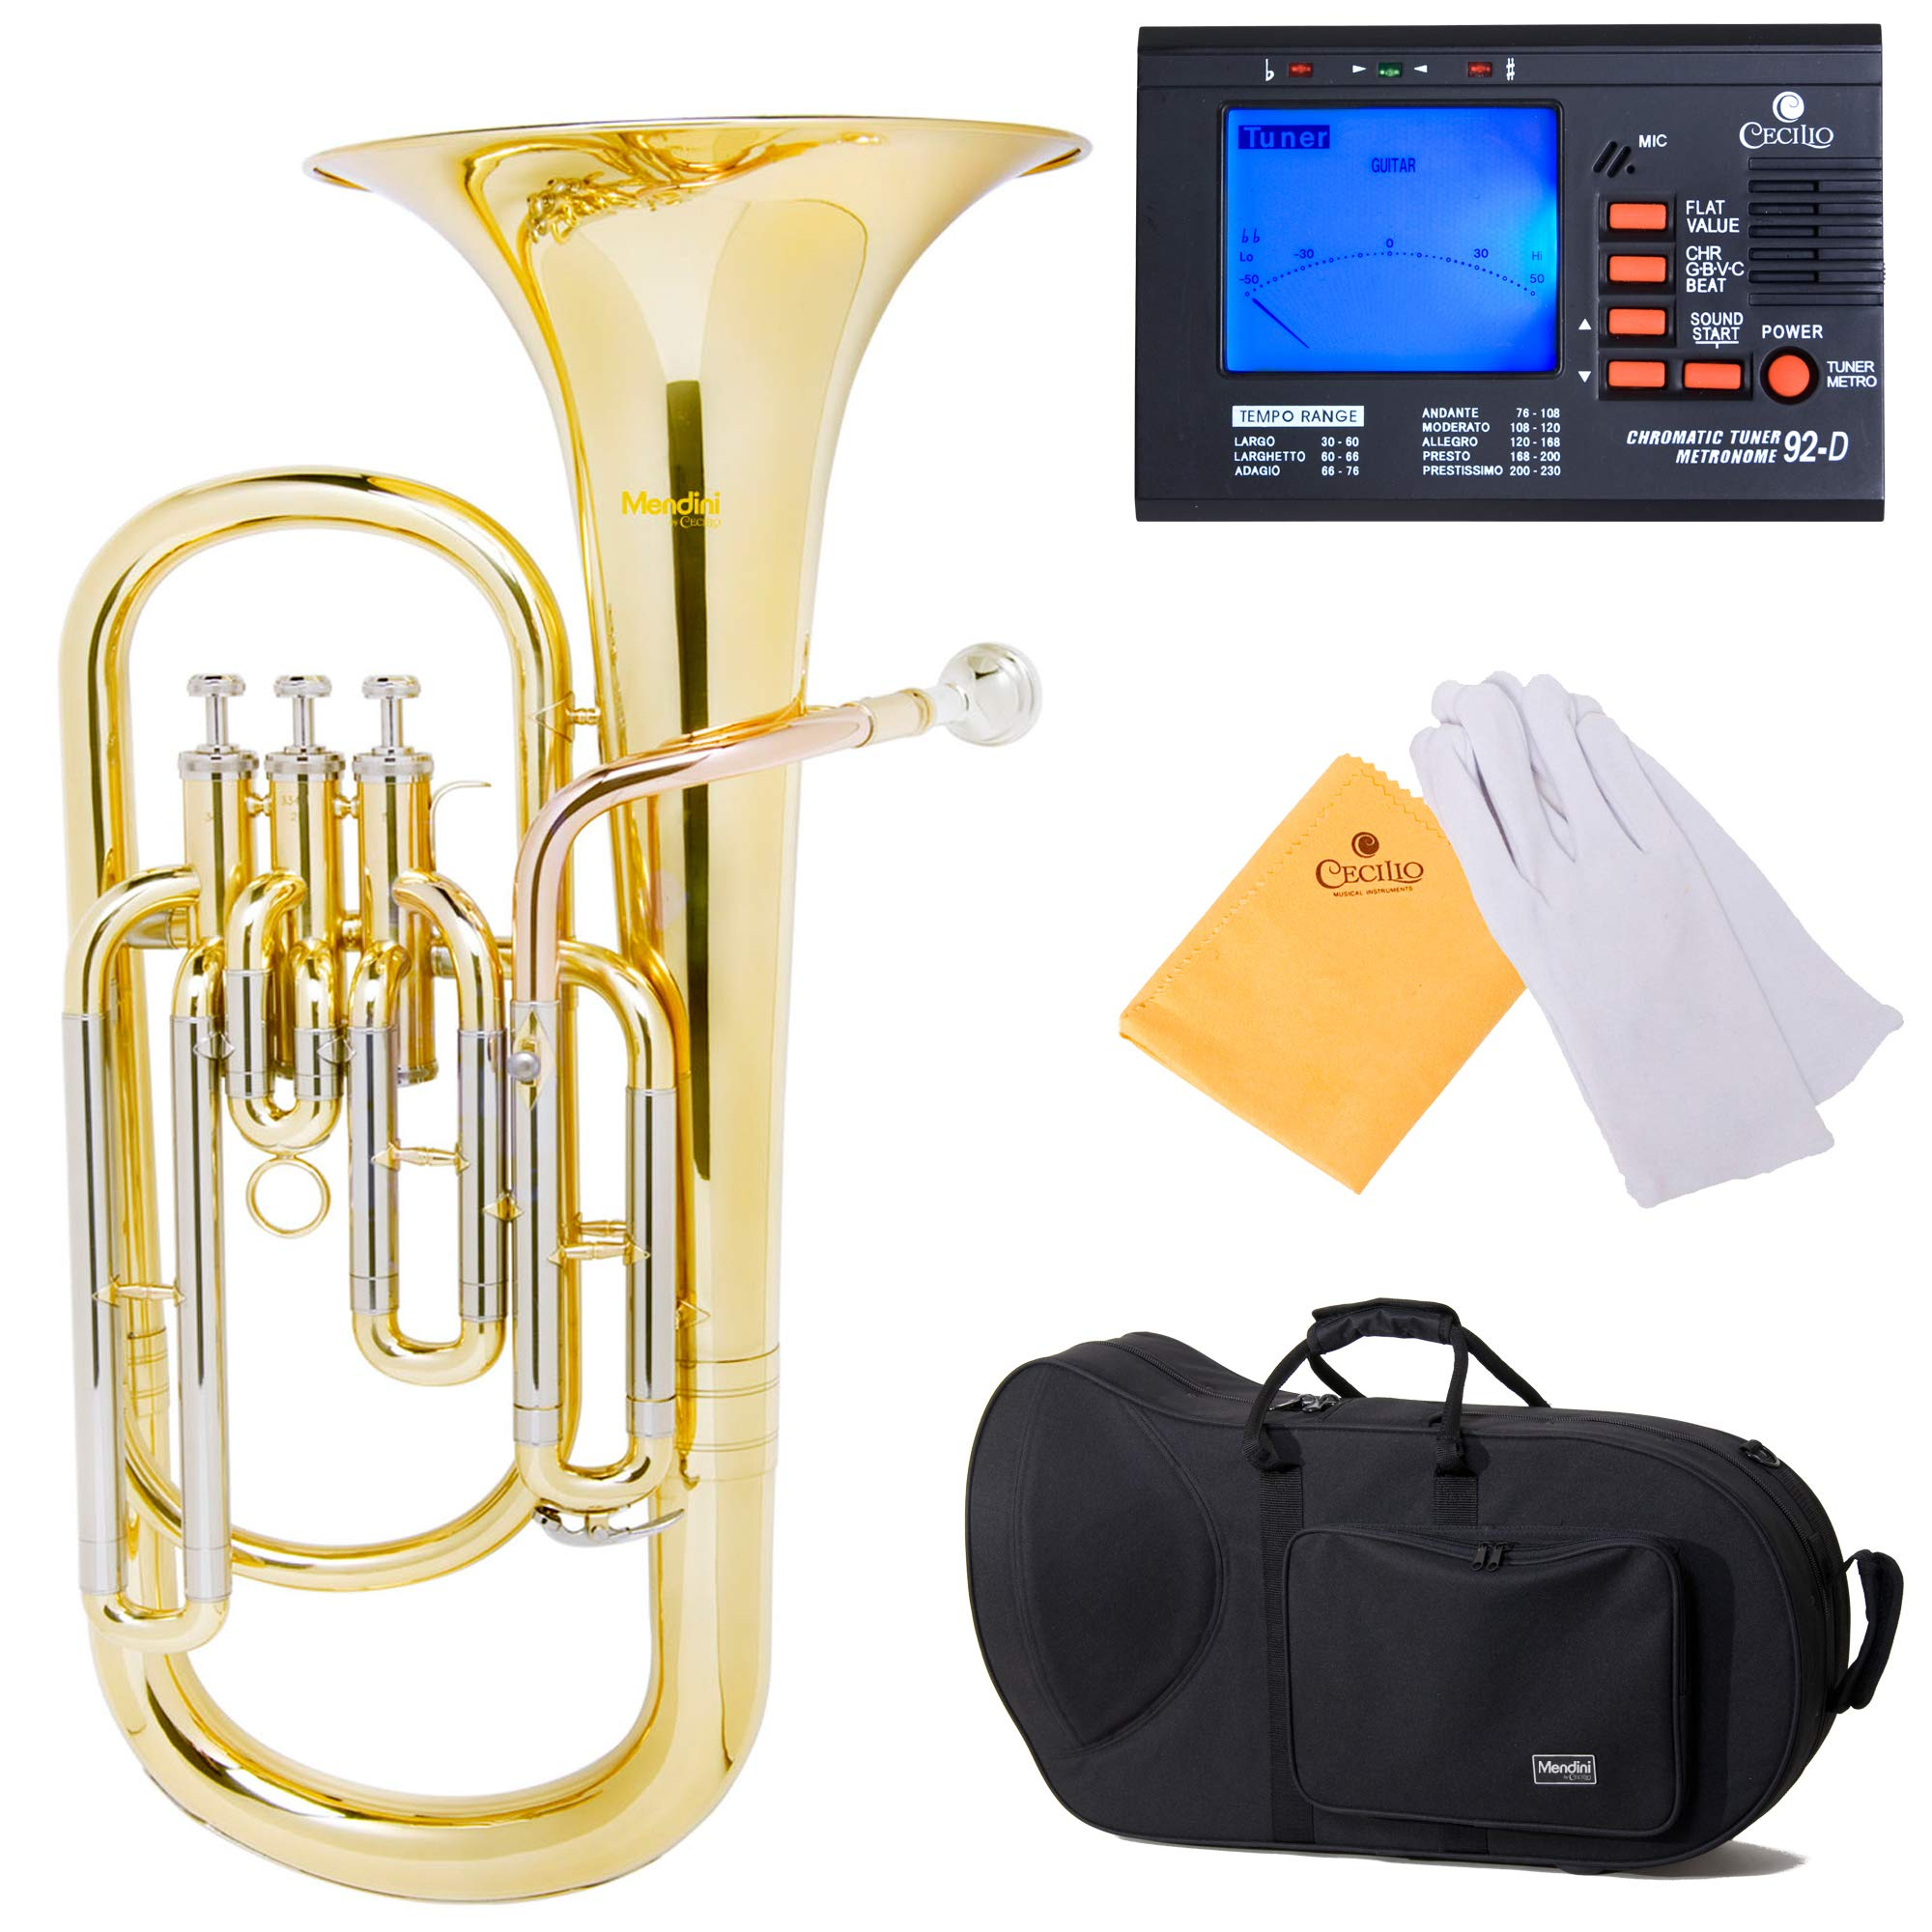 Mendini MBR-20 Lacquer Brass B Flat Baritone with Stainless Steel Pistons by Mendini by Cecilio